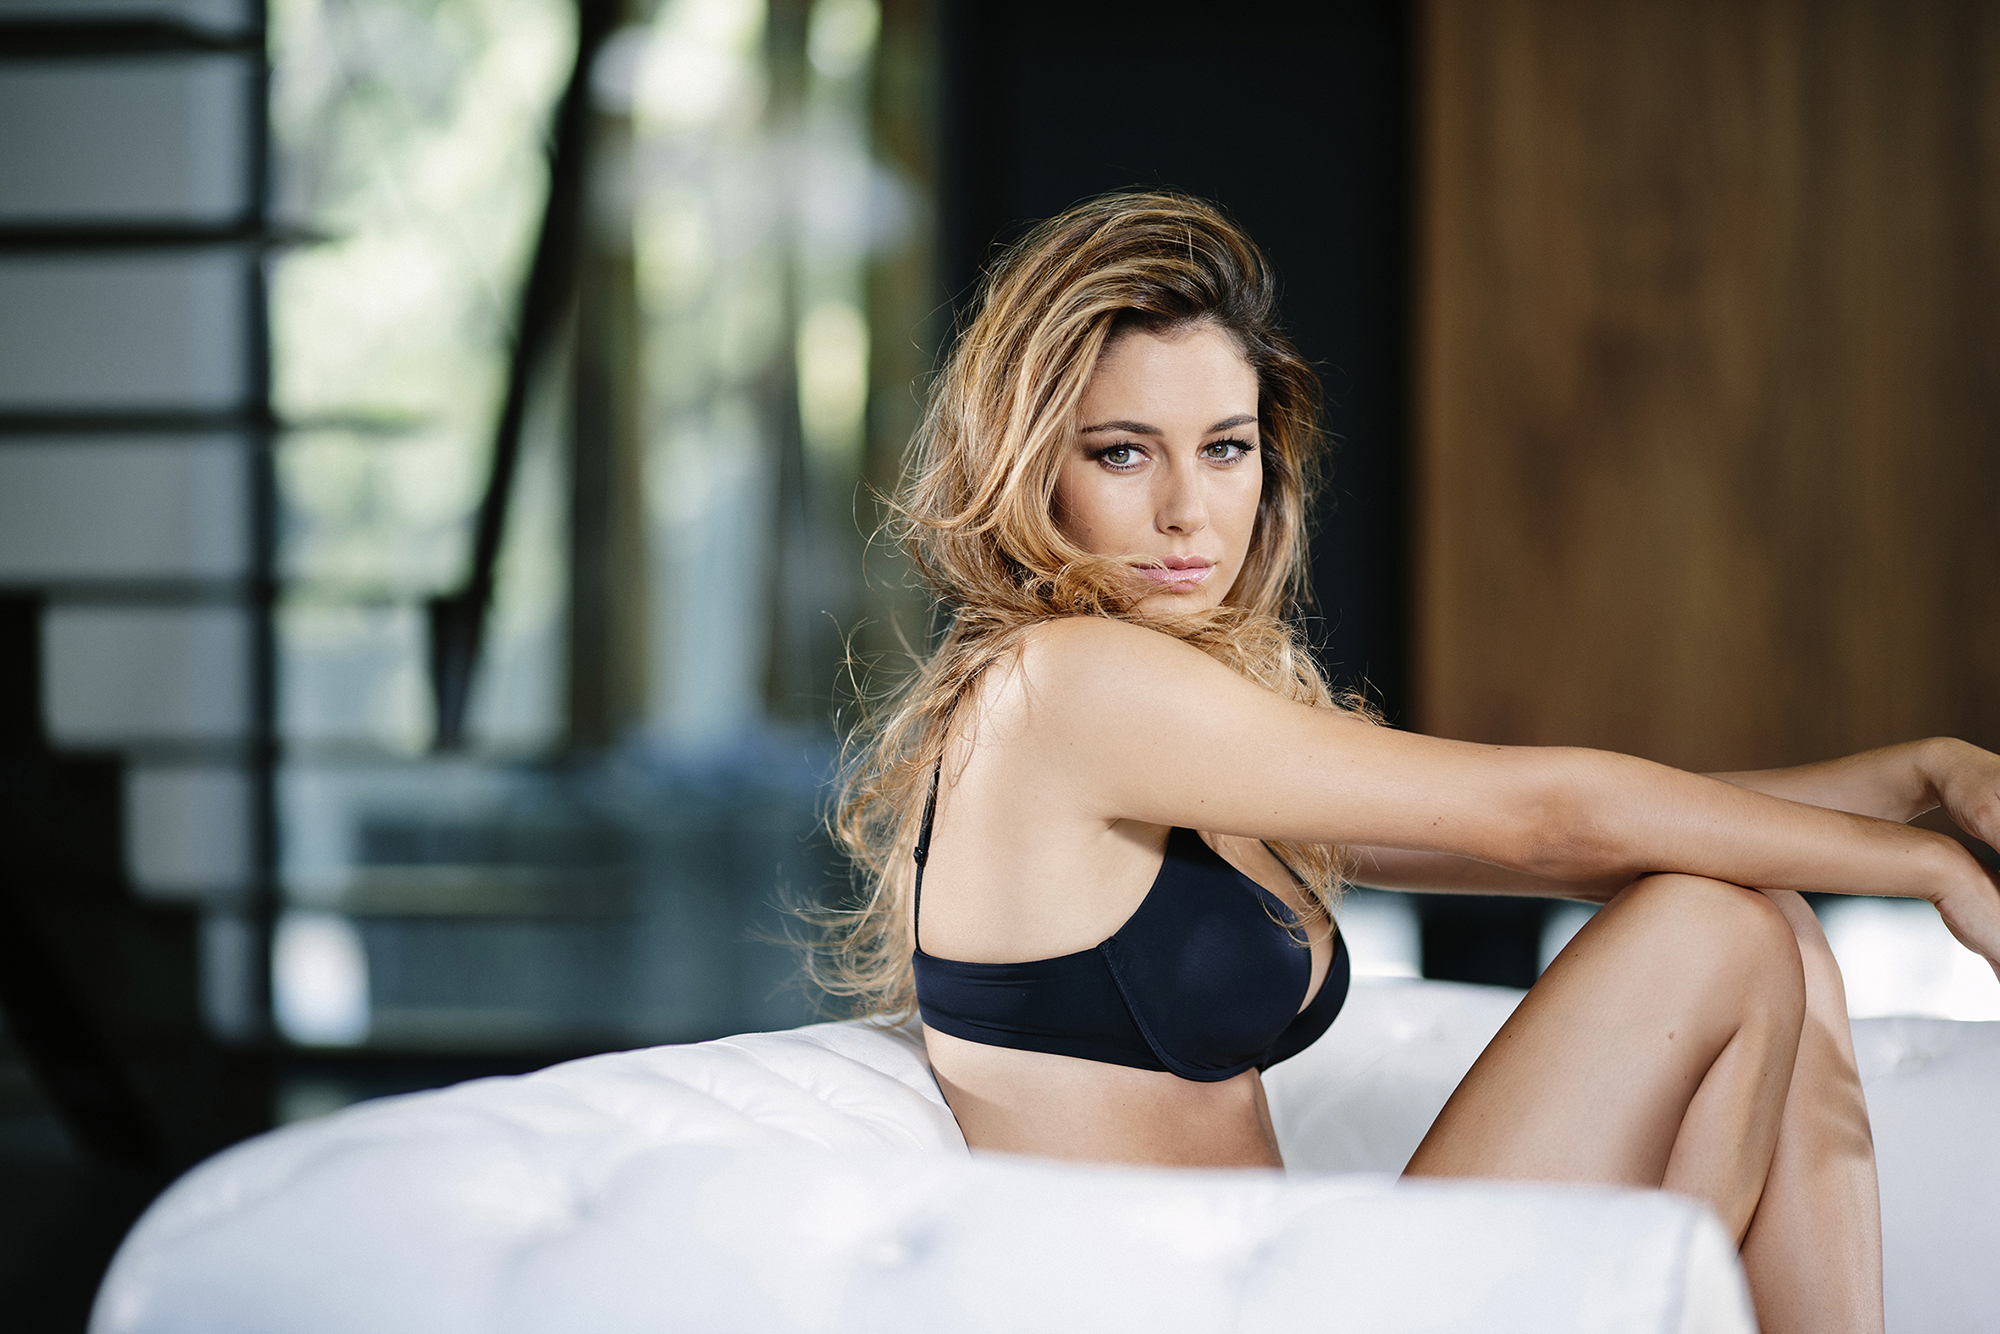 Hot Blanca Suarez nudes (38 photos), Sexy, Cleavage, Instagram, swimsuit 2019